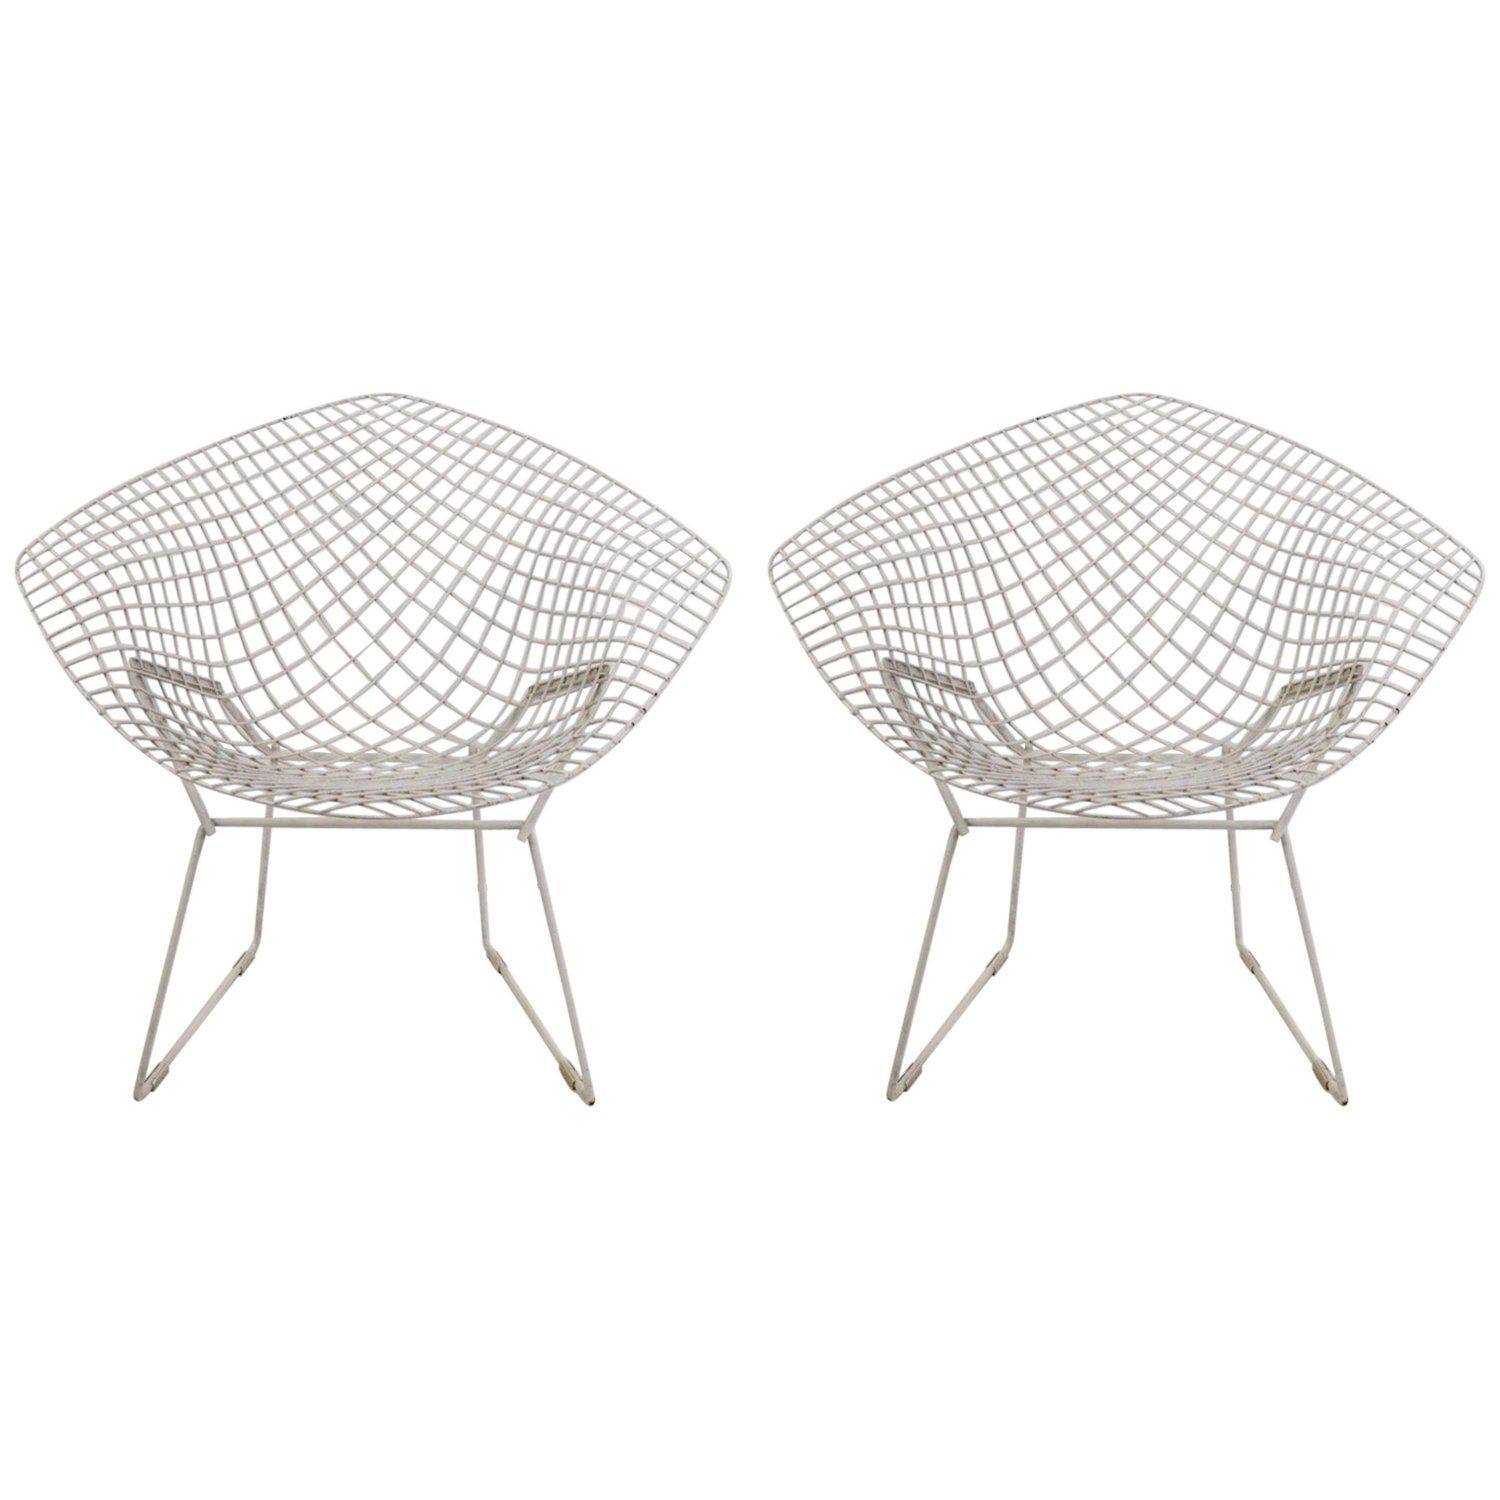 Pair Of Bertoia Diamond Chairs With Images Bertoia Diamond Chair Bertoia Chair